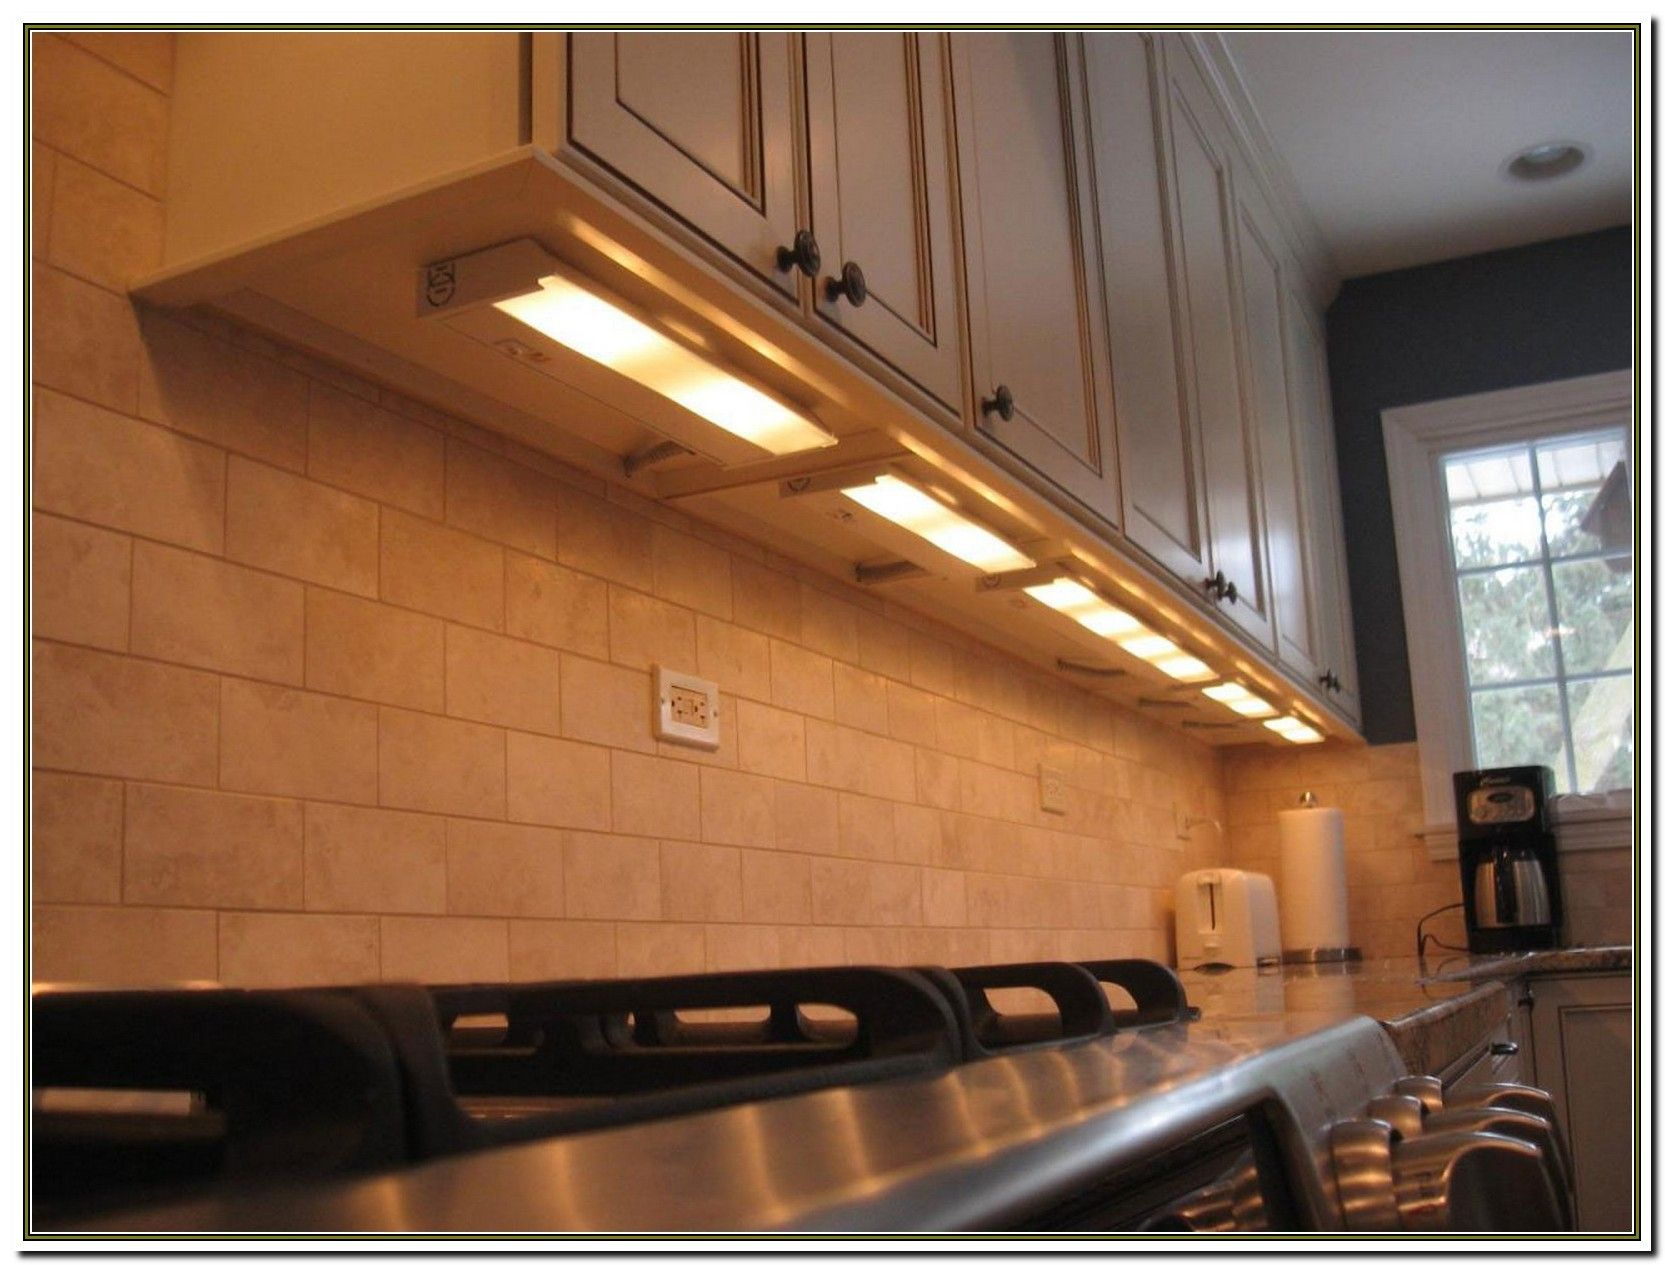 47 Reference Of Kitchen Lighting Under Cabinet Led In 2020 Under Cabinet Lighting Light Kitchen Cabinets Under Counter Lighting